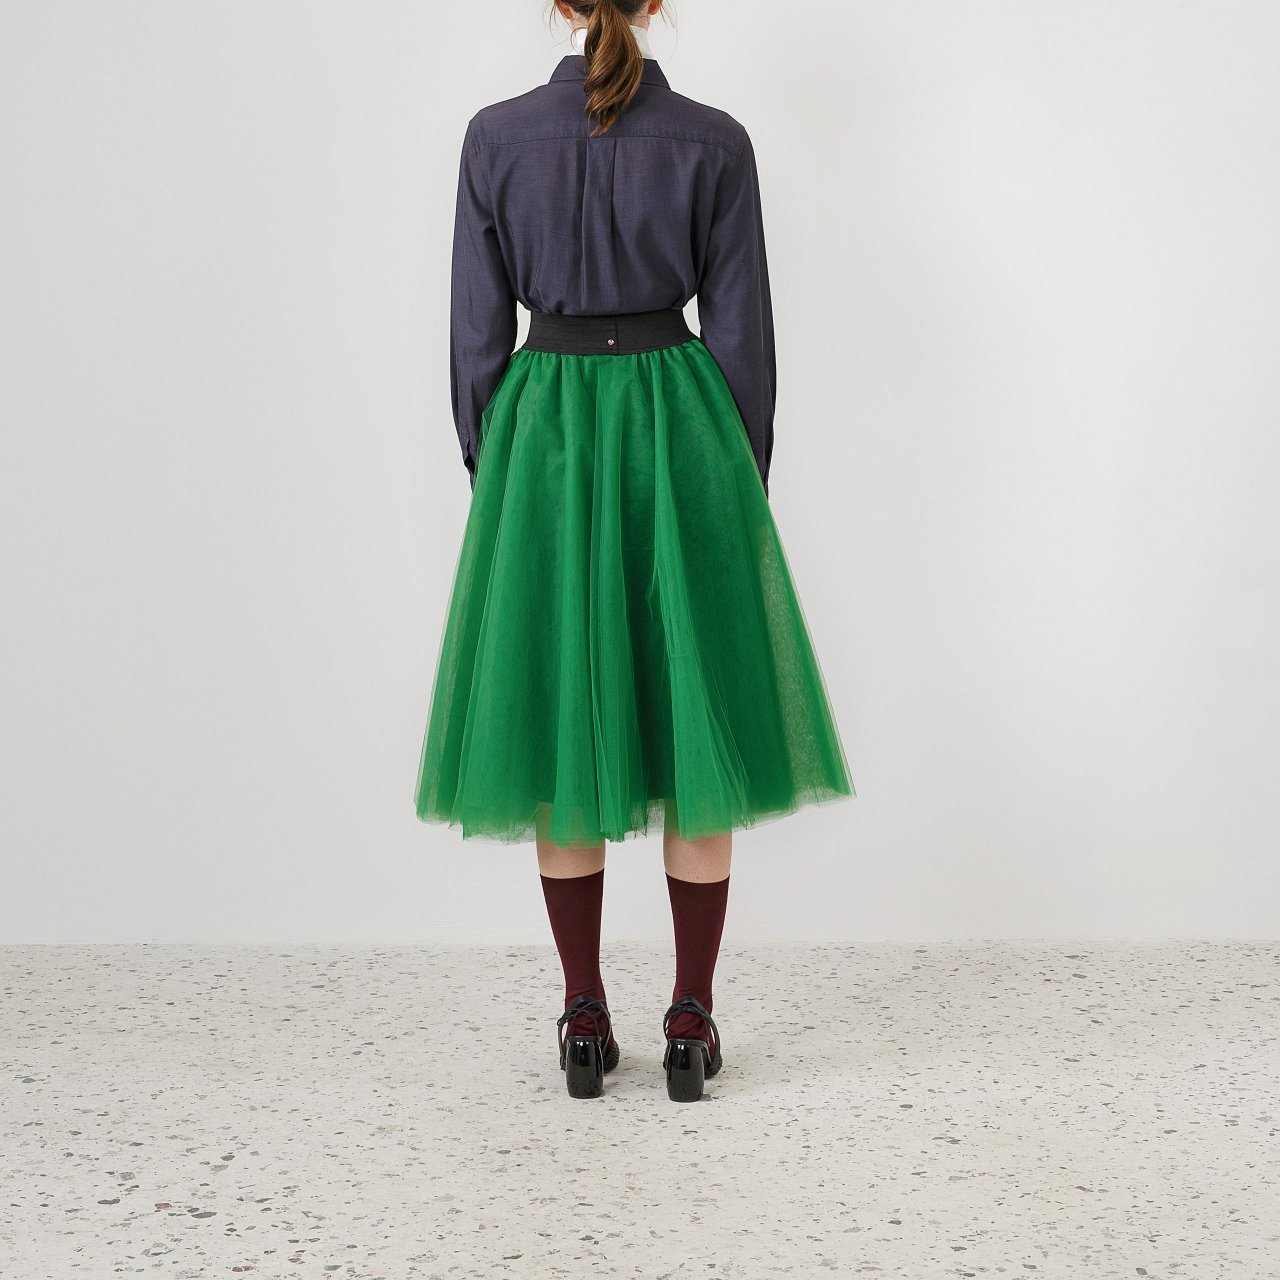 Product preview: Tulle Tutu Skirt Green Midi